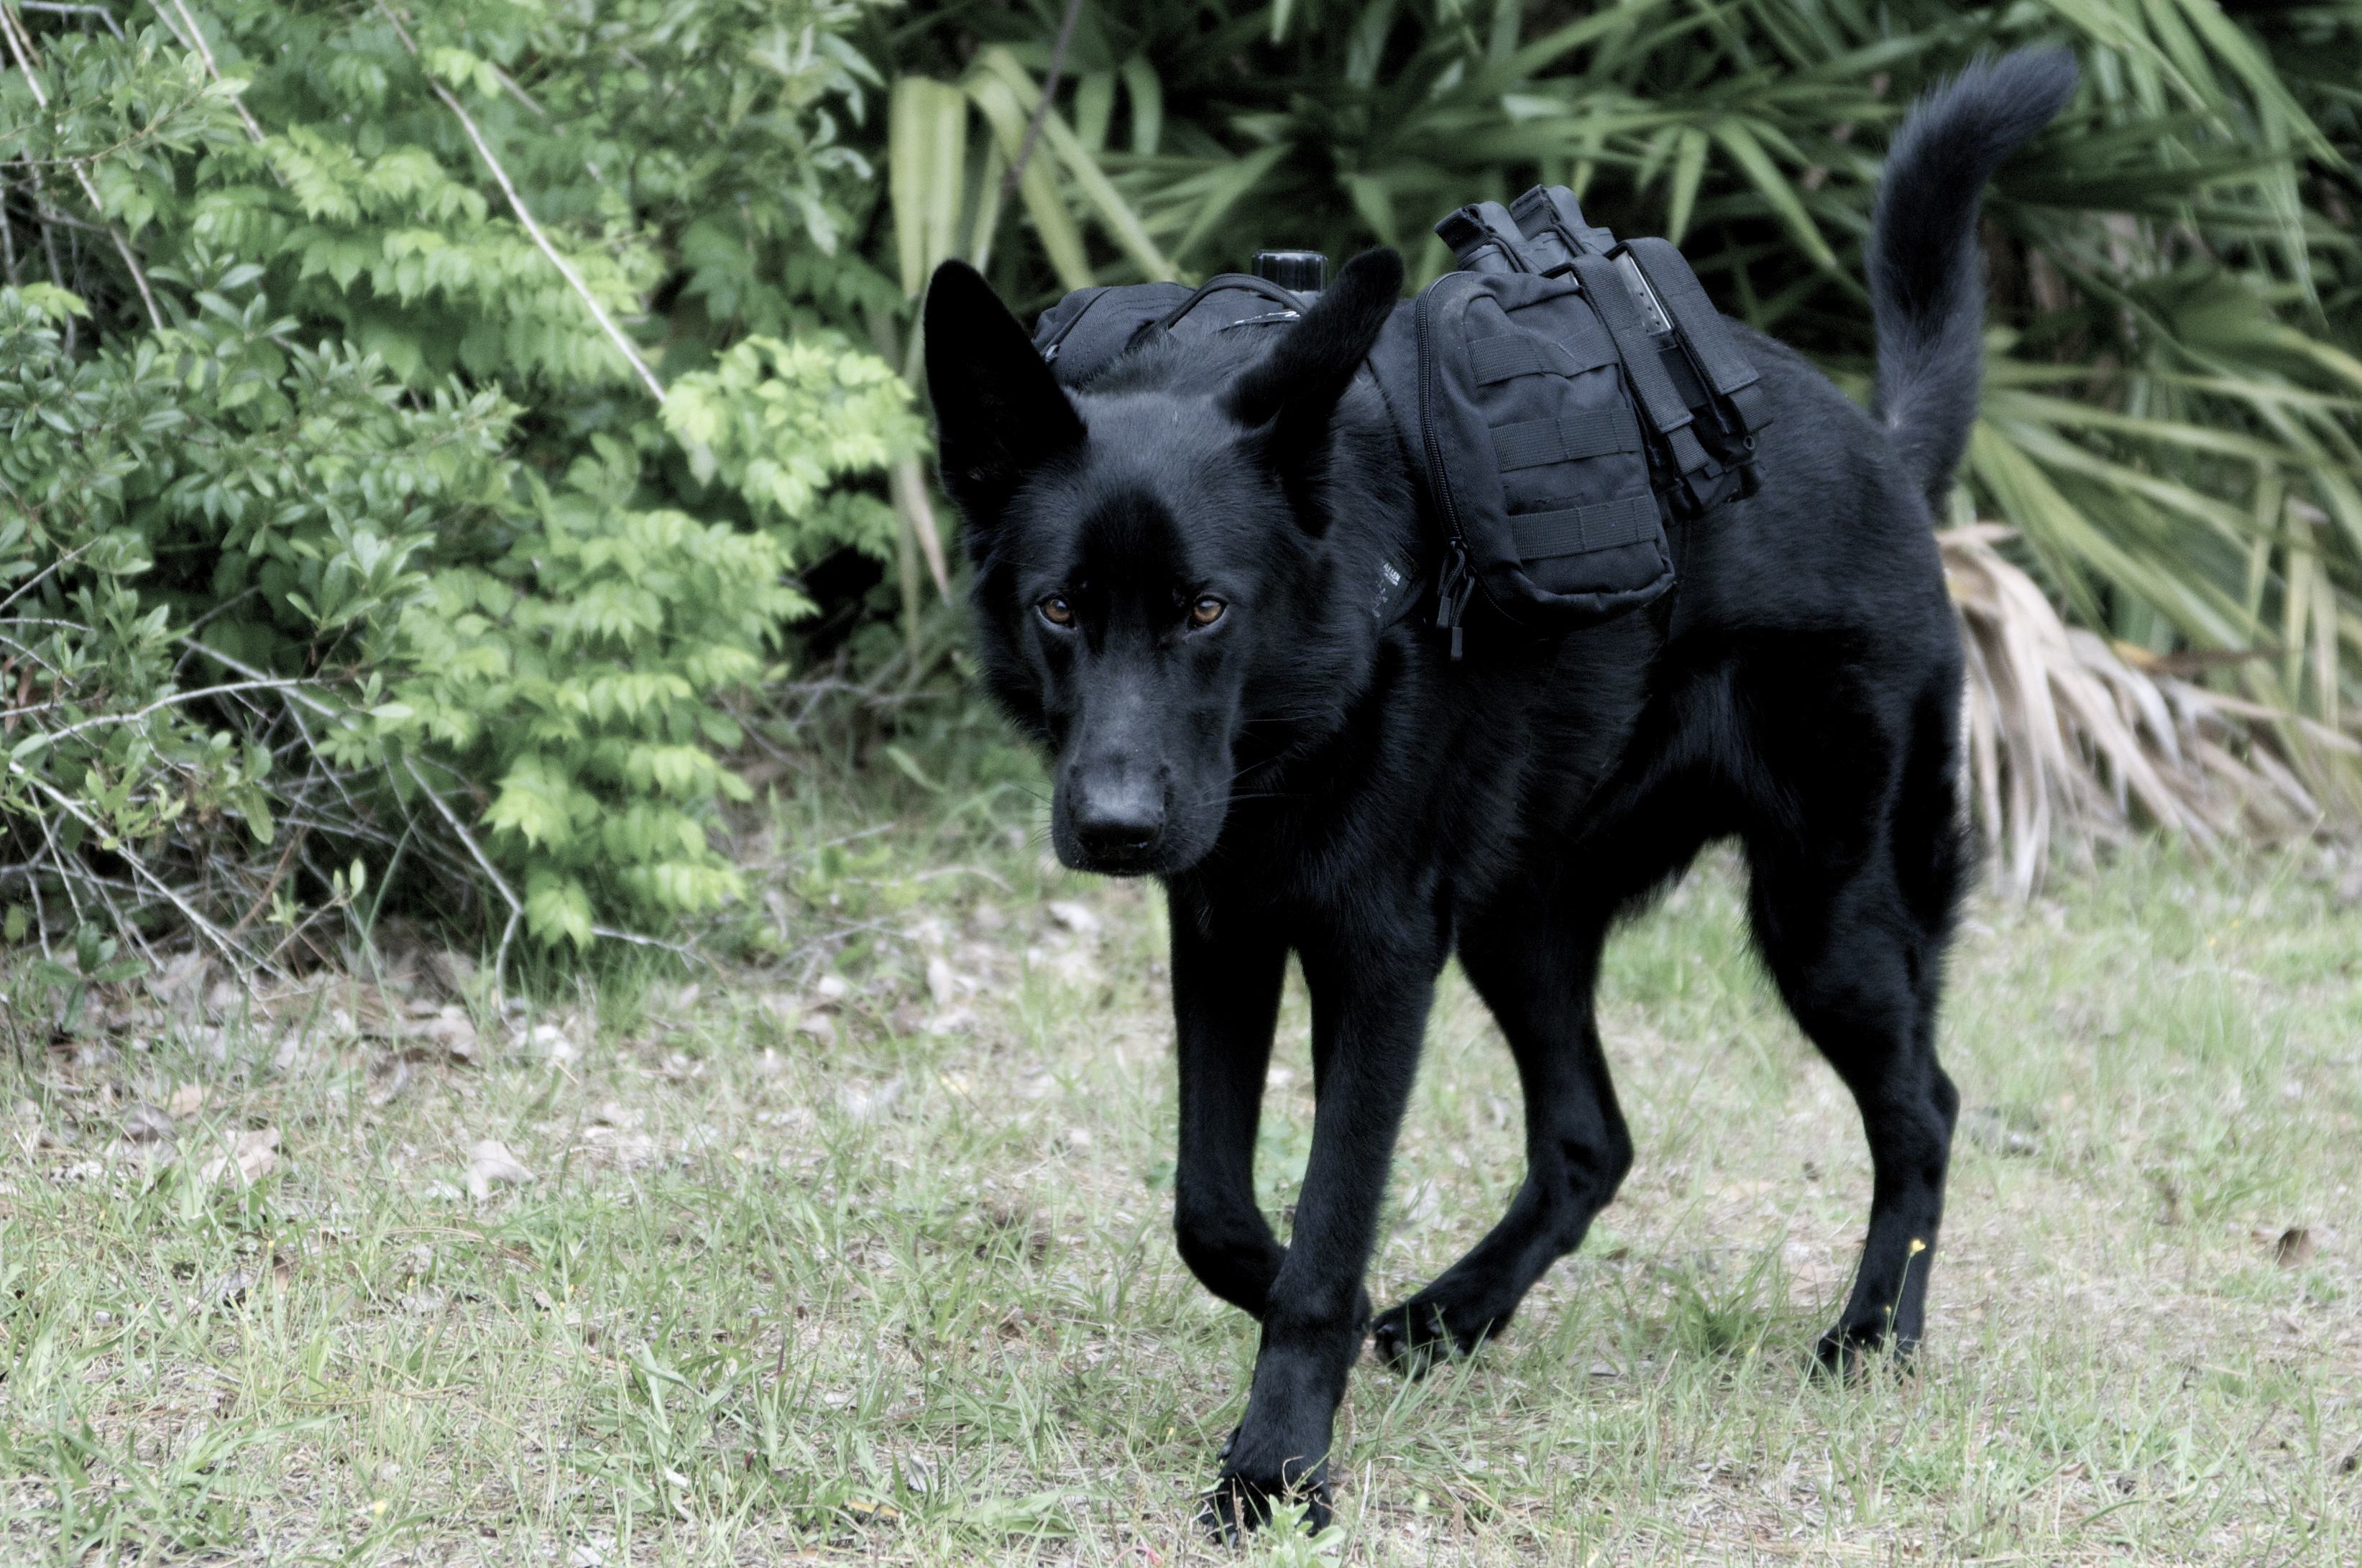 German Shepherd Backpack - Prepper Style